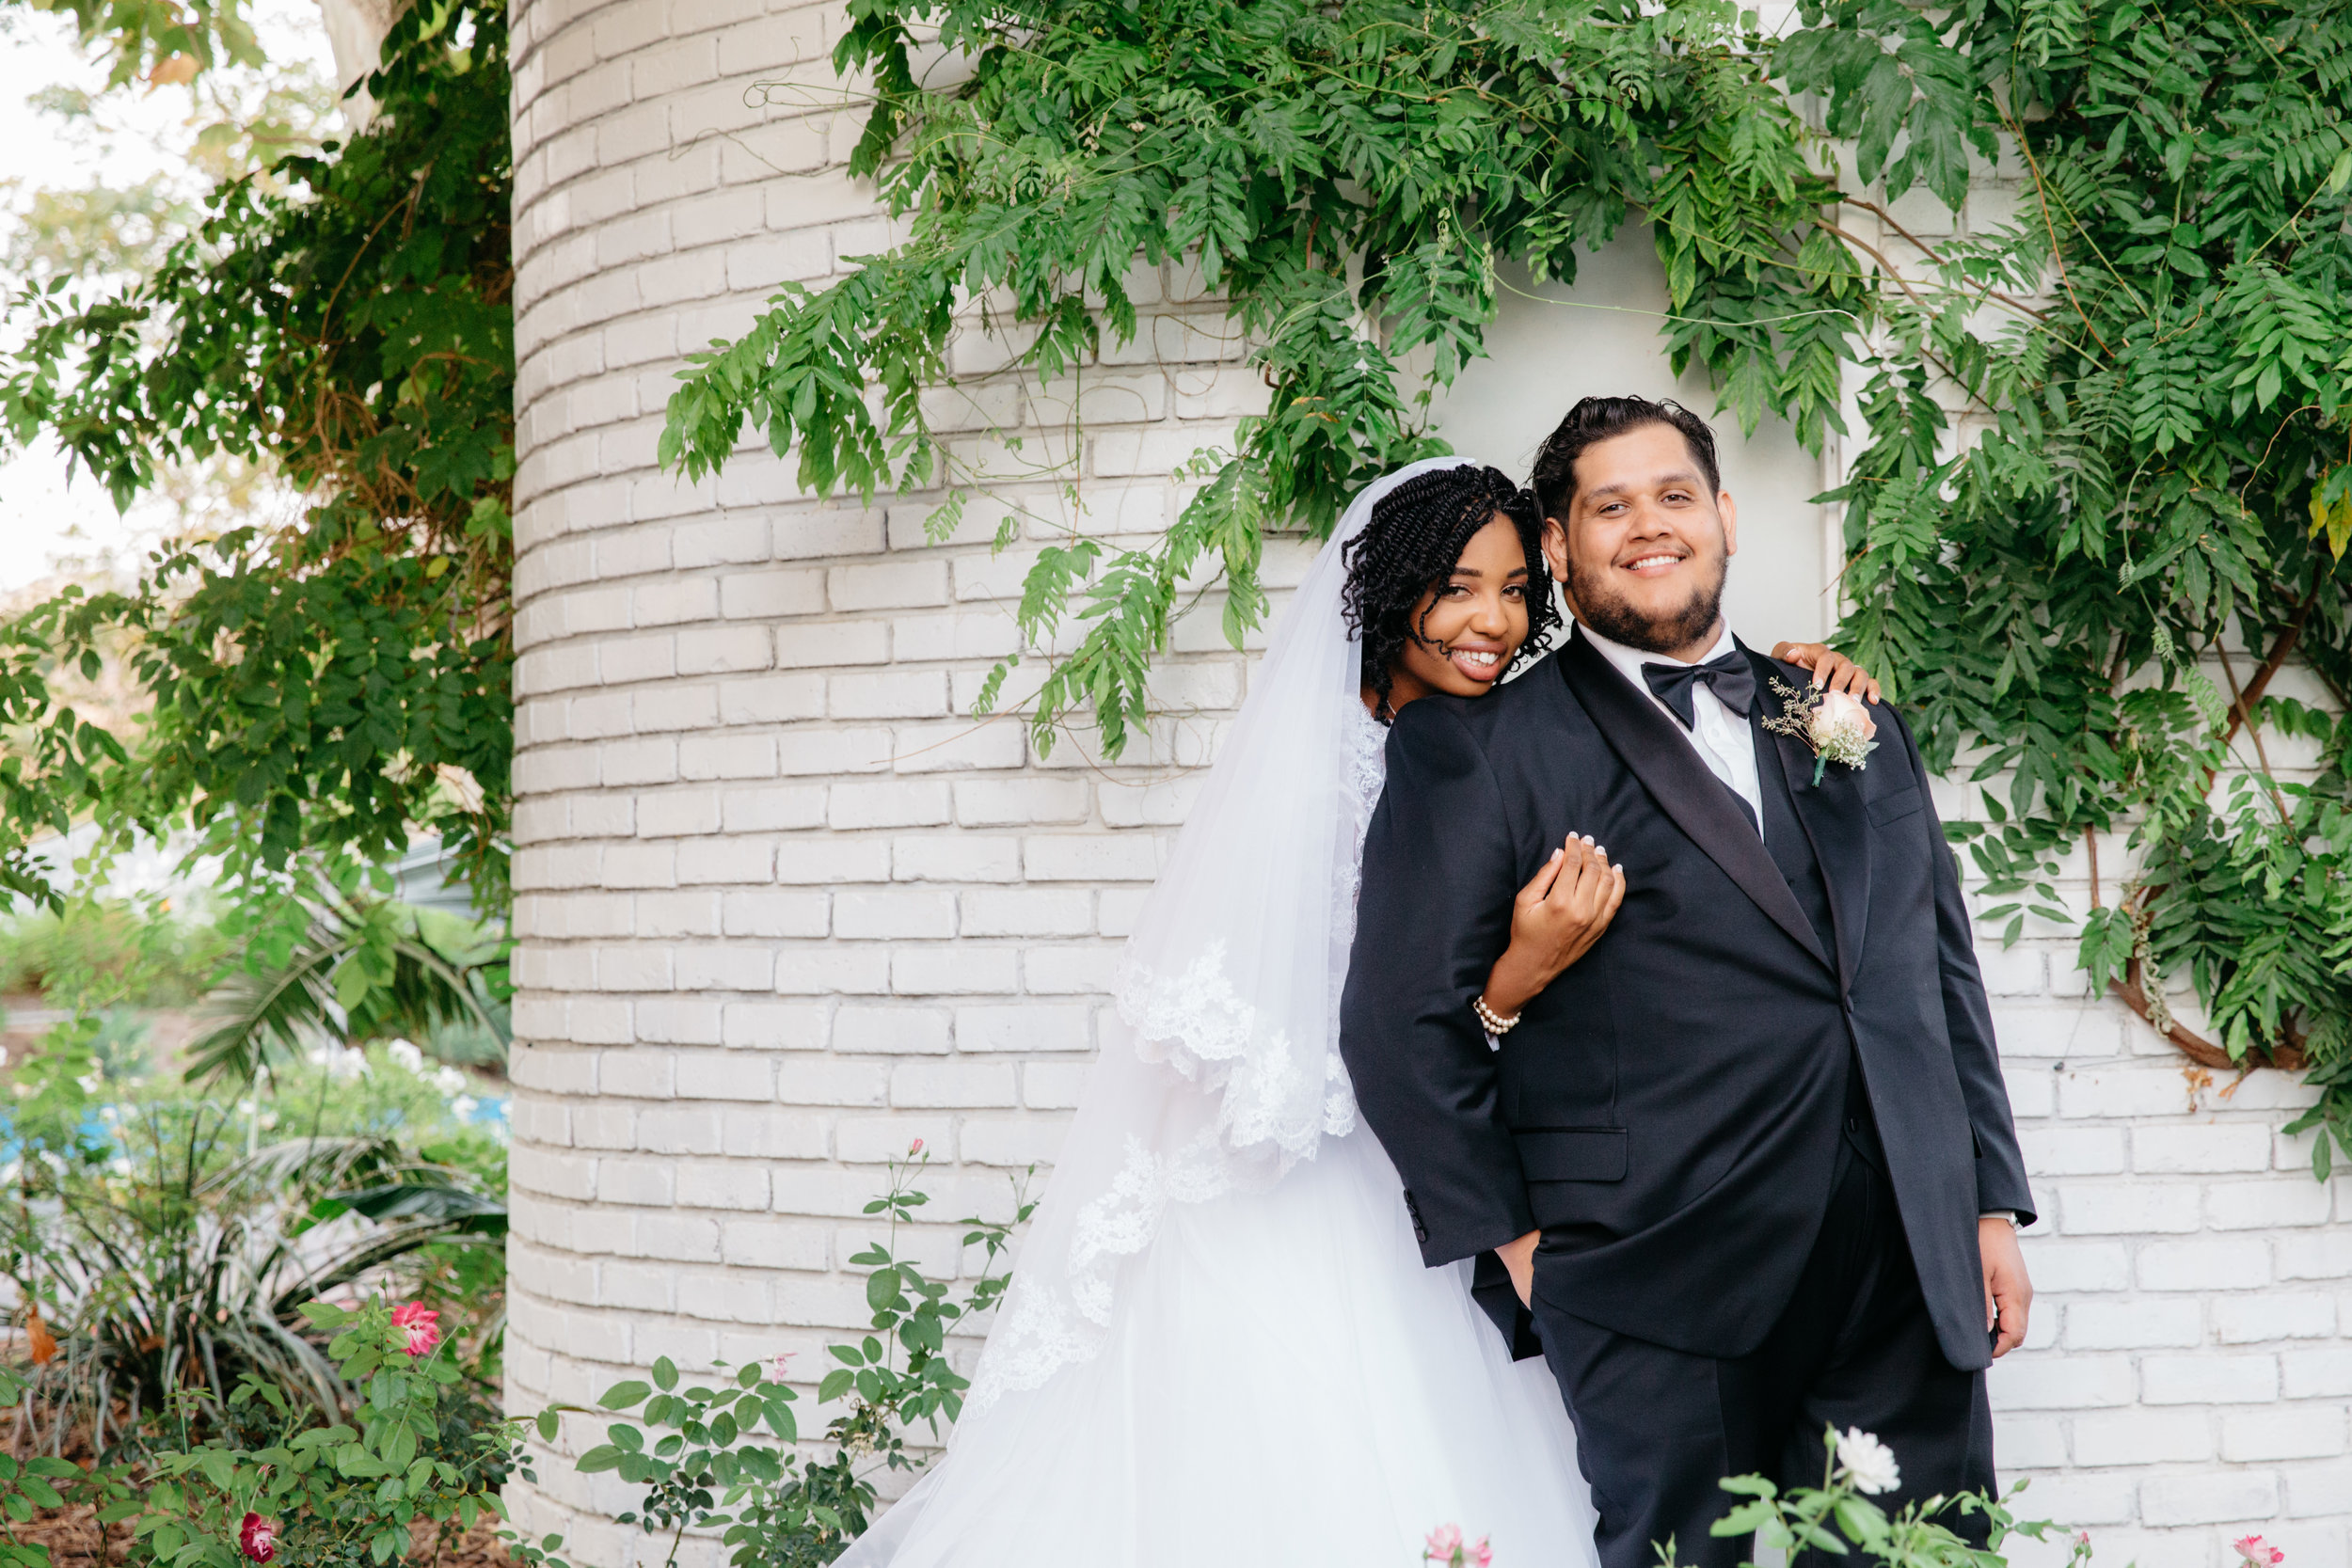 The Vineyard Wedding Jenna Bells and Laces Photography-45.jpg